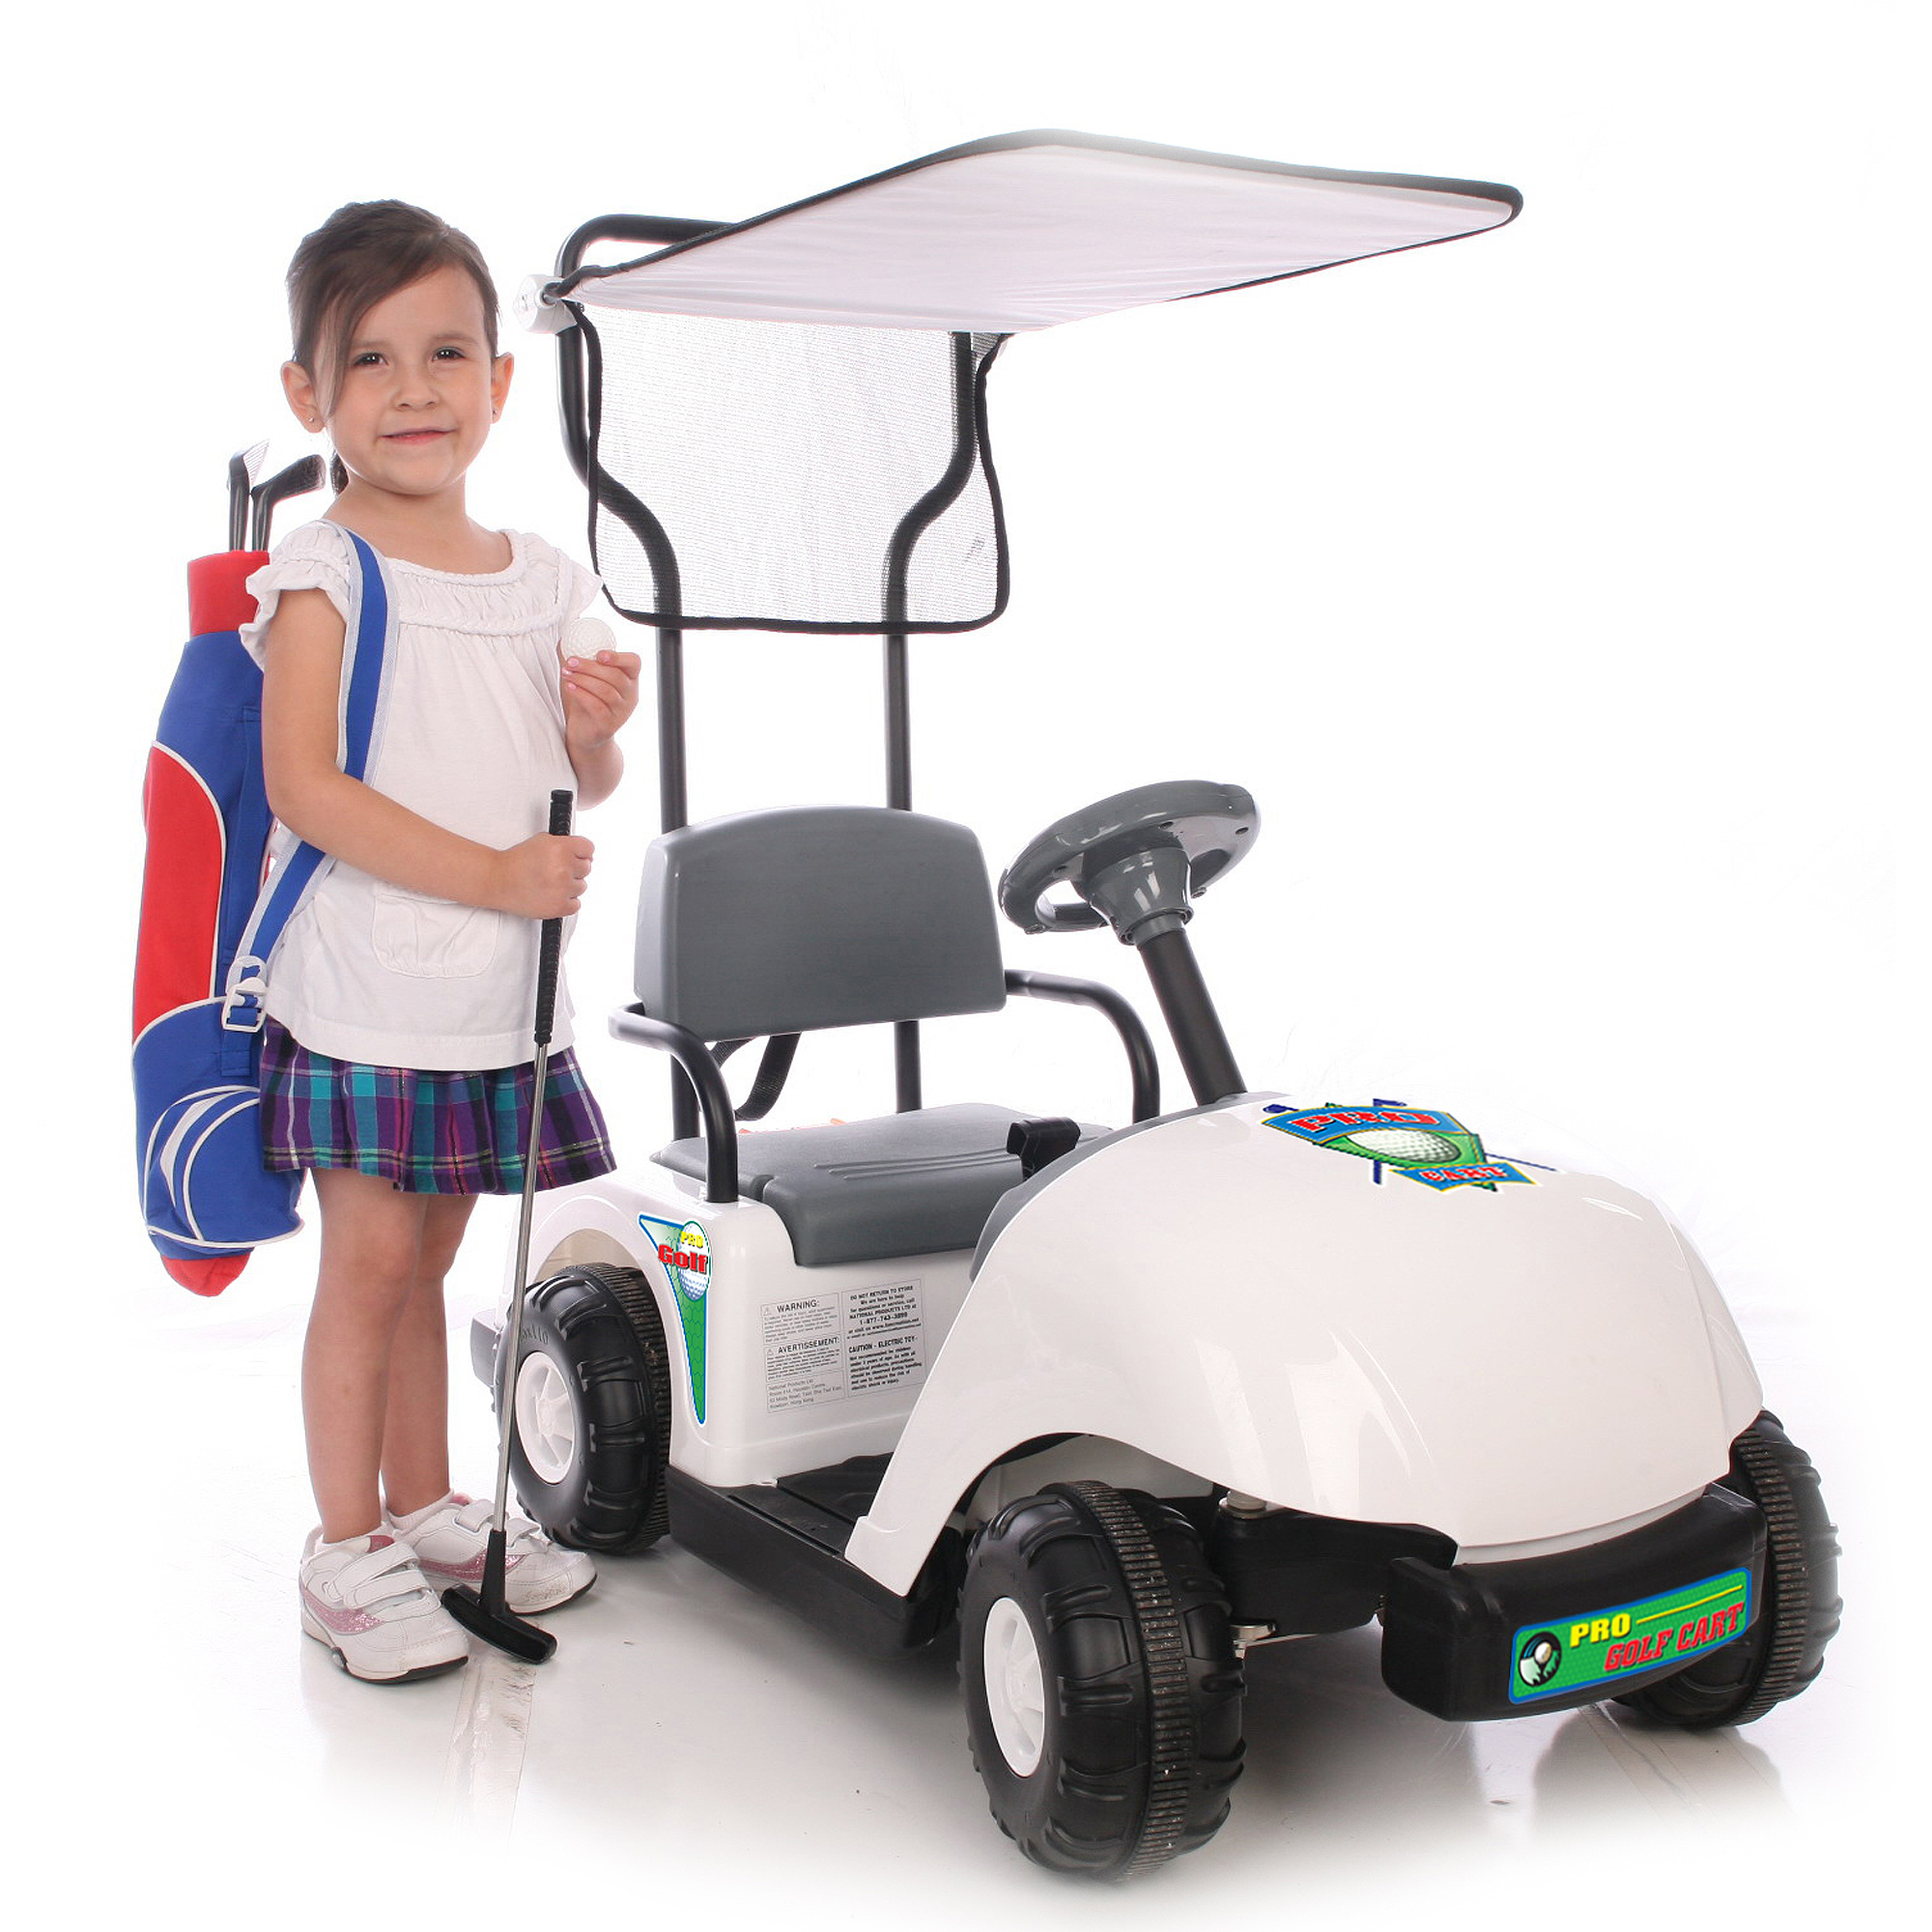 Kid Motorz Junior Pro Golf Cart 6-Volt Battery-Powered Ride-On